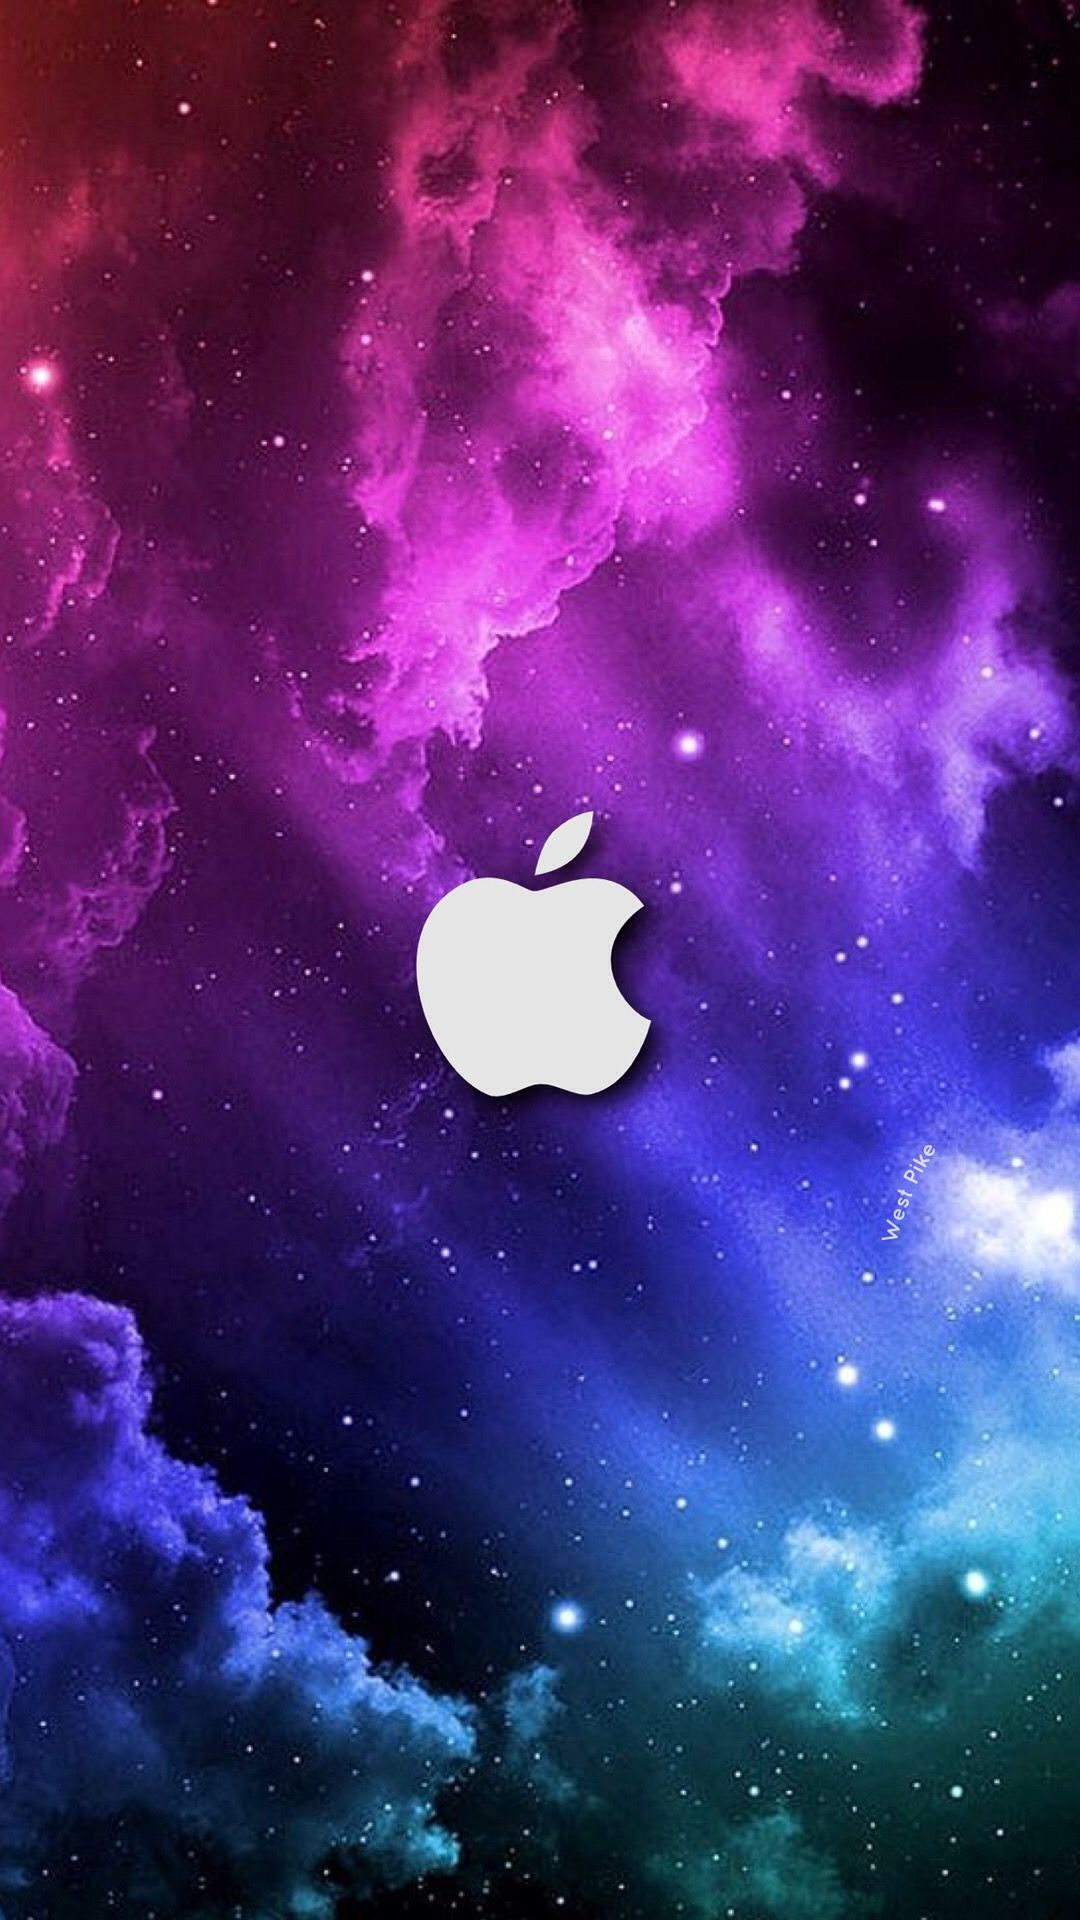 Pin by Destiny on Apples Apple logo wallpaper iphone